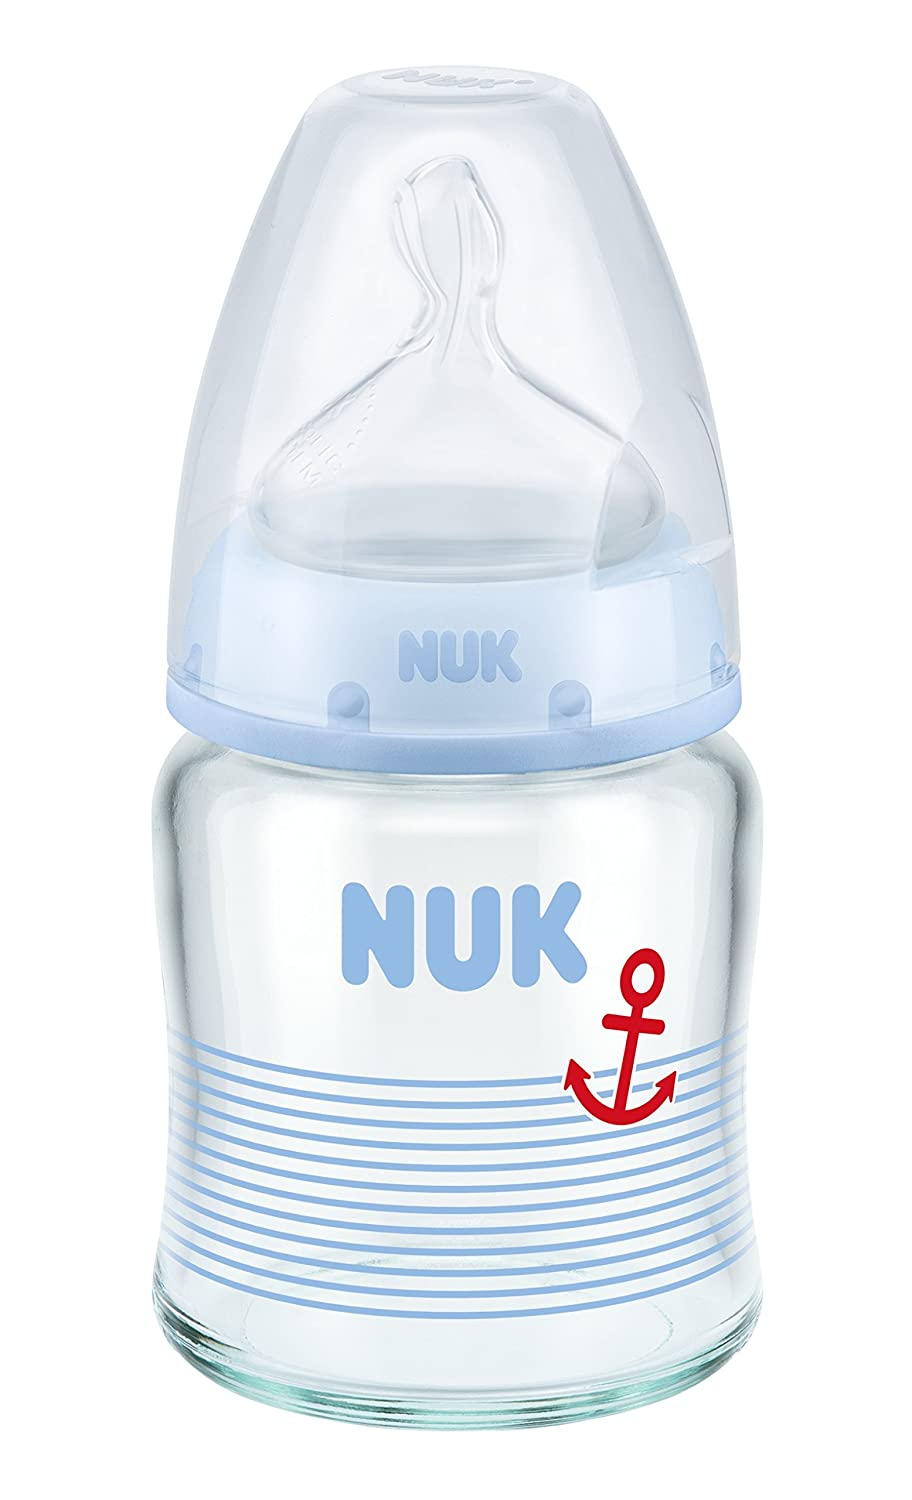 Nuk 10211015 First Choice Plus Glass Baby Bottle, 120ml, silicone teats, size 0-6 months, S, blue